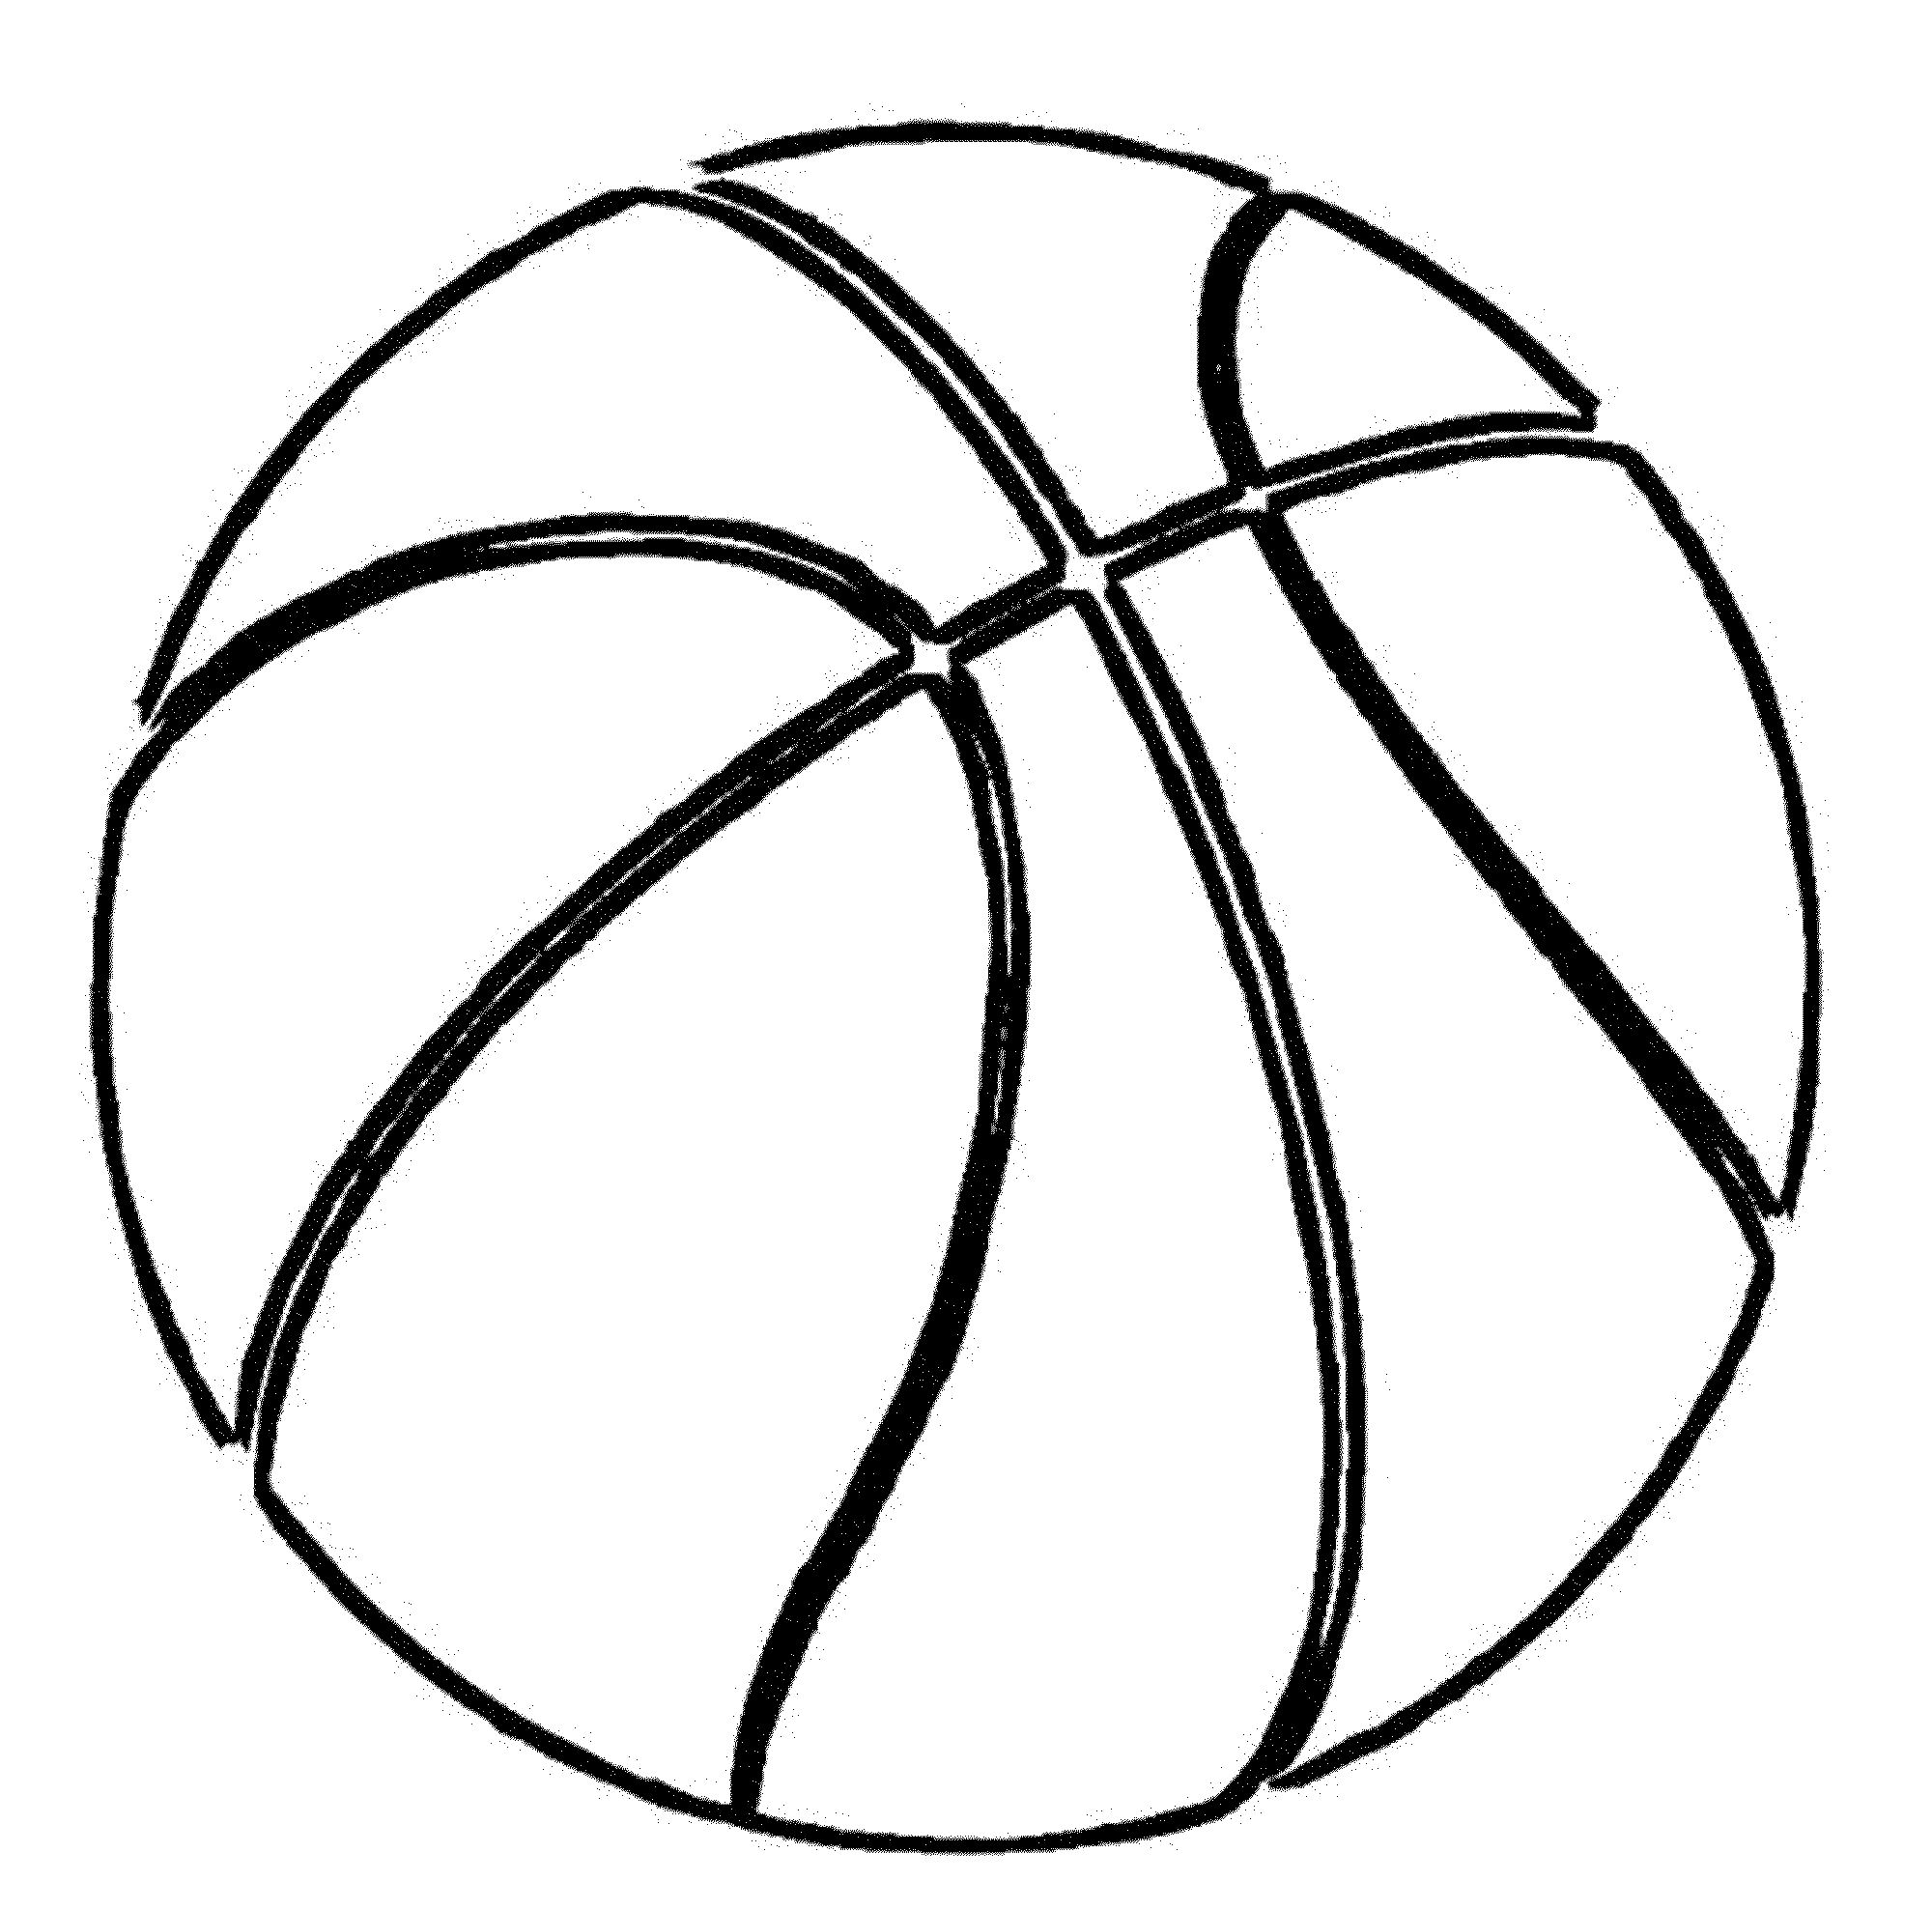 coloring pages for adults uk basketball | Basketball Coloring Pages For Adults - Coloring Home